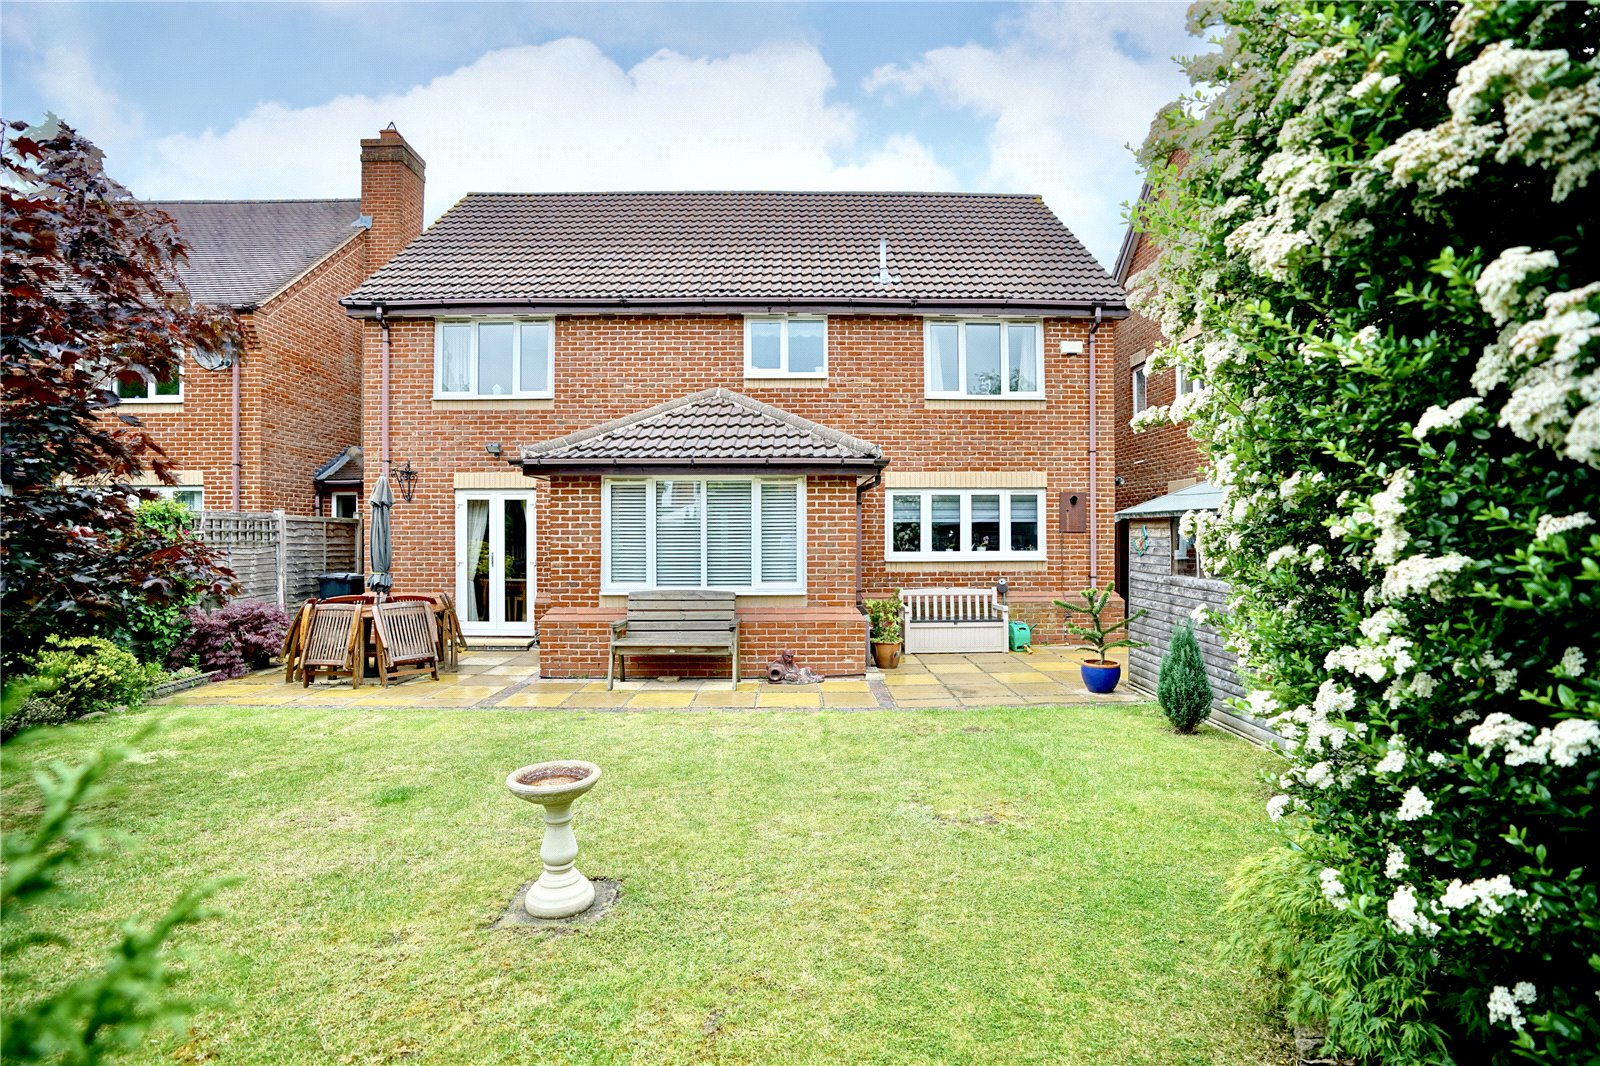 4 bed house for sale in Great Gransden 14